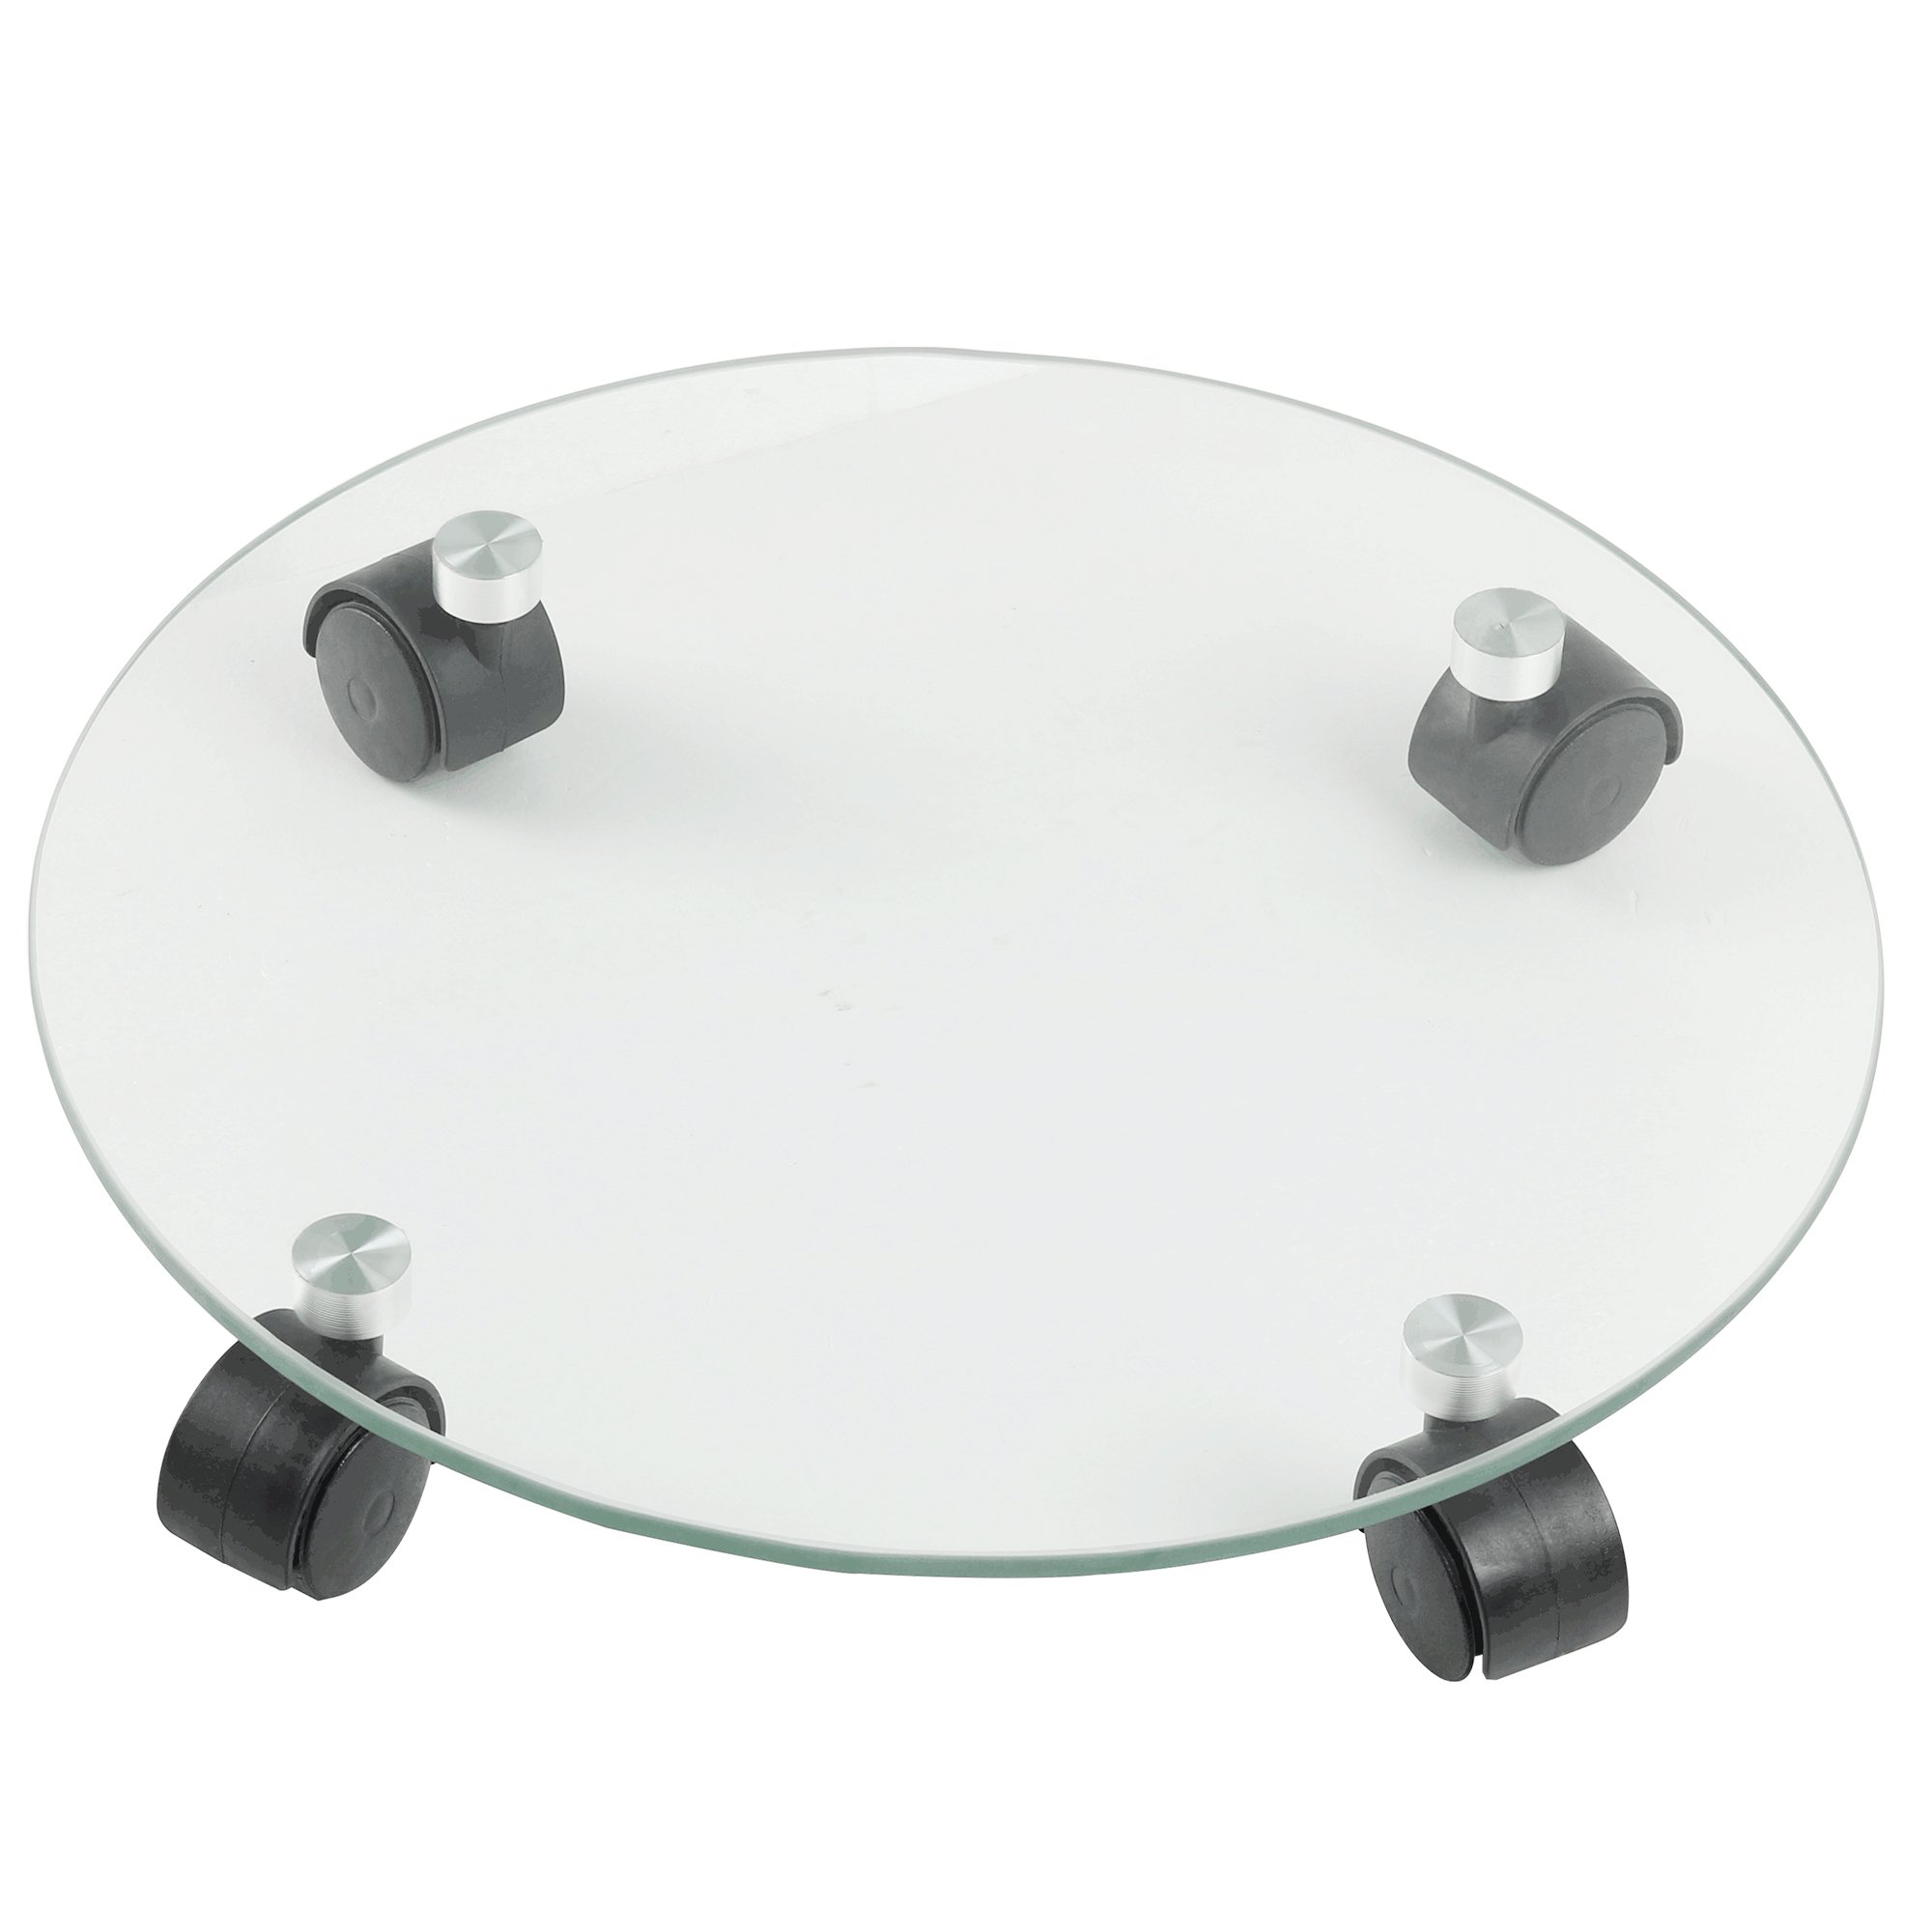 FLORA GUARD 13.8 inch Heavy Duty Plant Caddy- Glass Round Stand, Glass Grinding Surface with Universal Wheel, Indoor Outdoor Garden